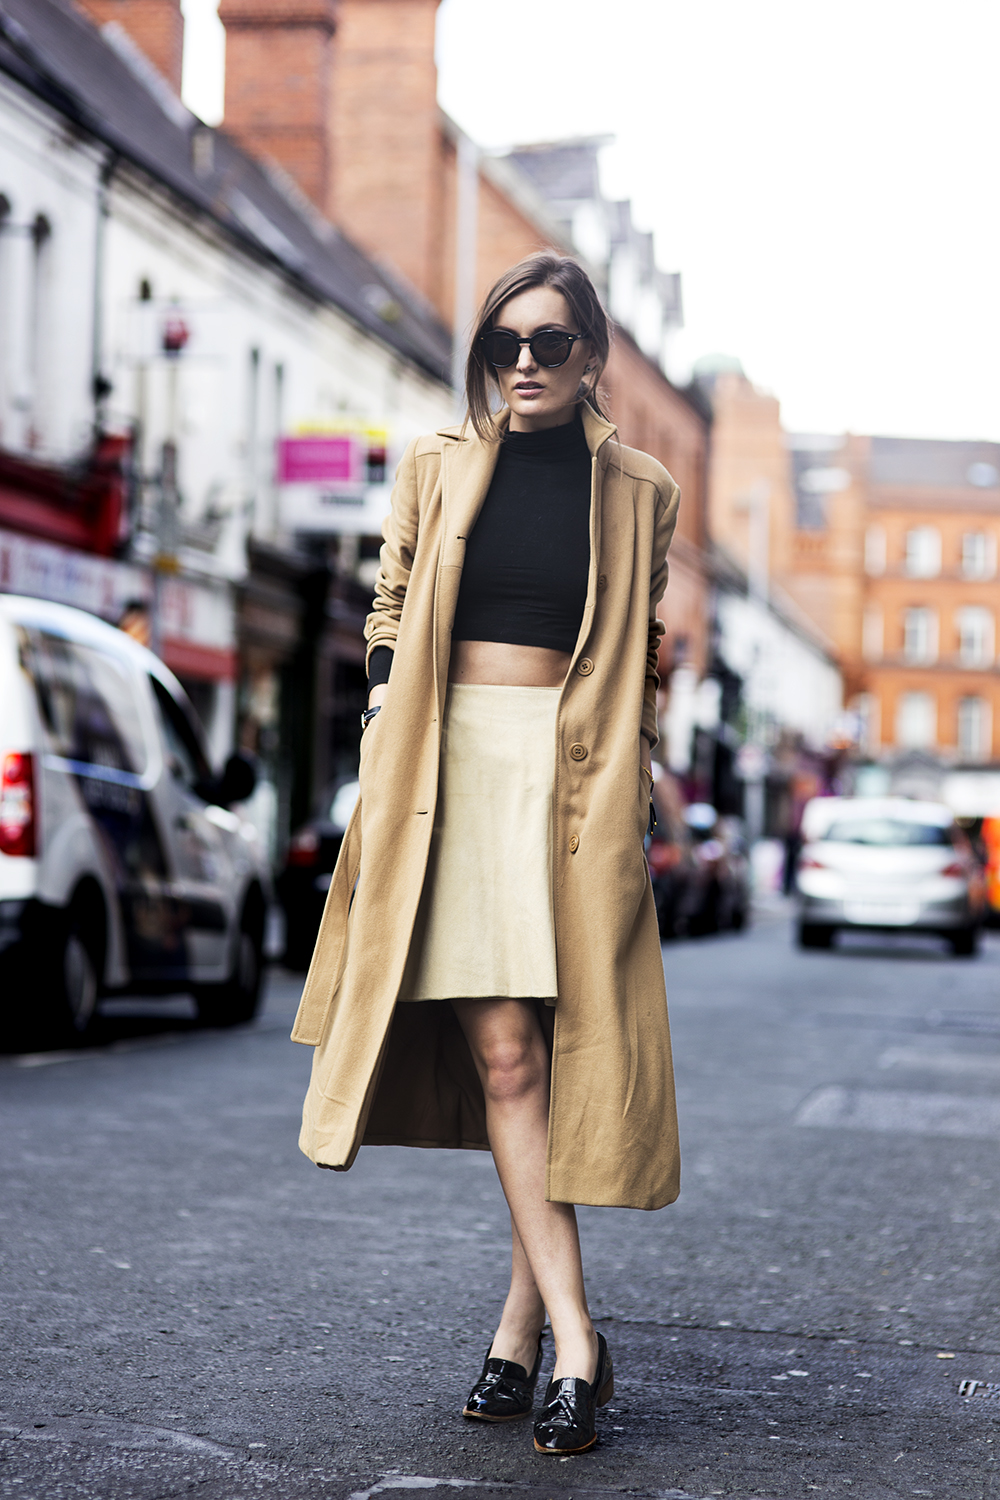 Anouska Proetta Branson is wearing a vintage camel coat, crop top from H&M, skirt from Folkstersuede, shoes from Office and sunglasses from Mink Pink